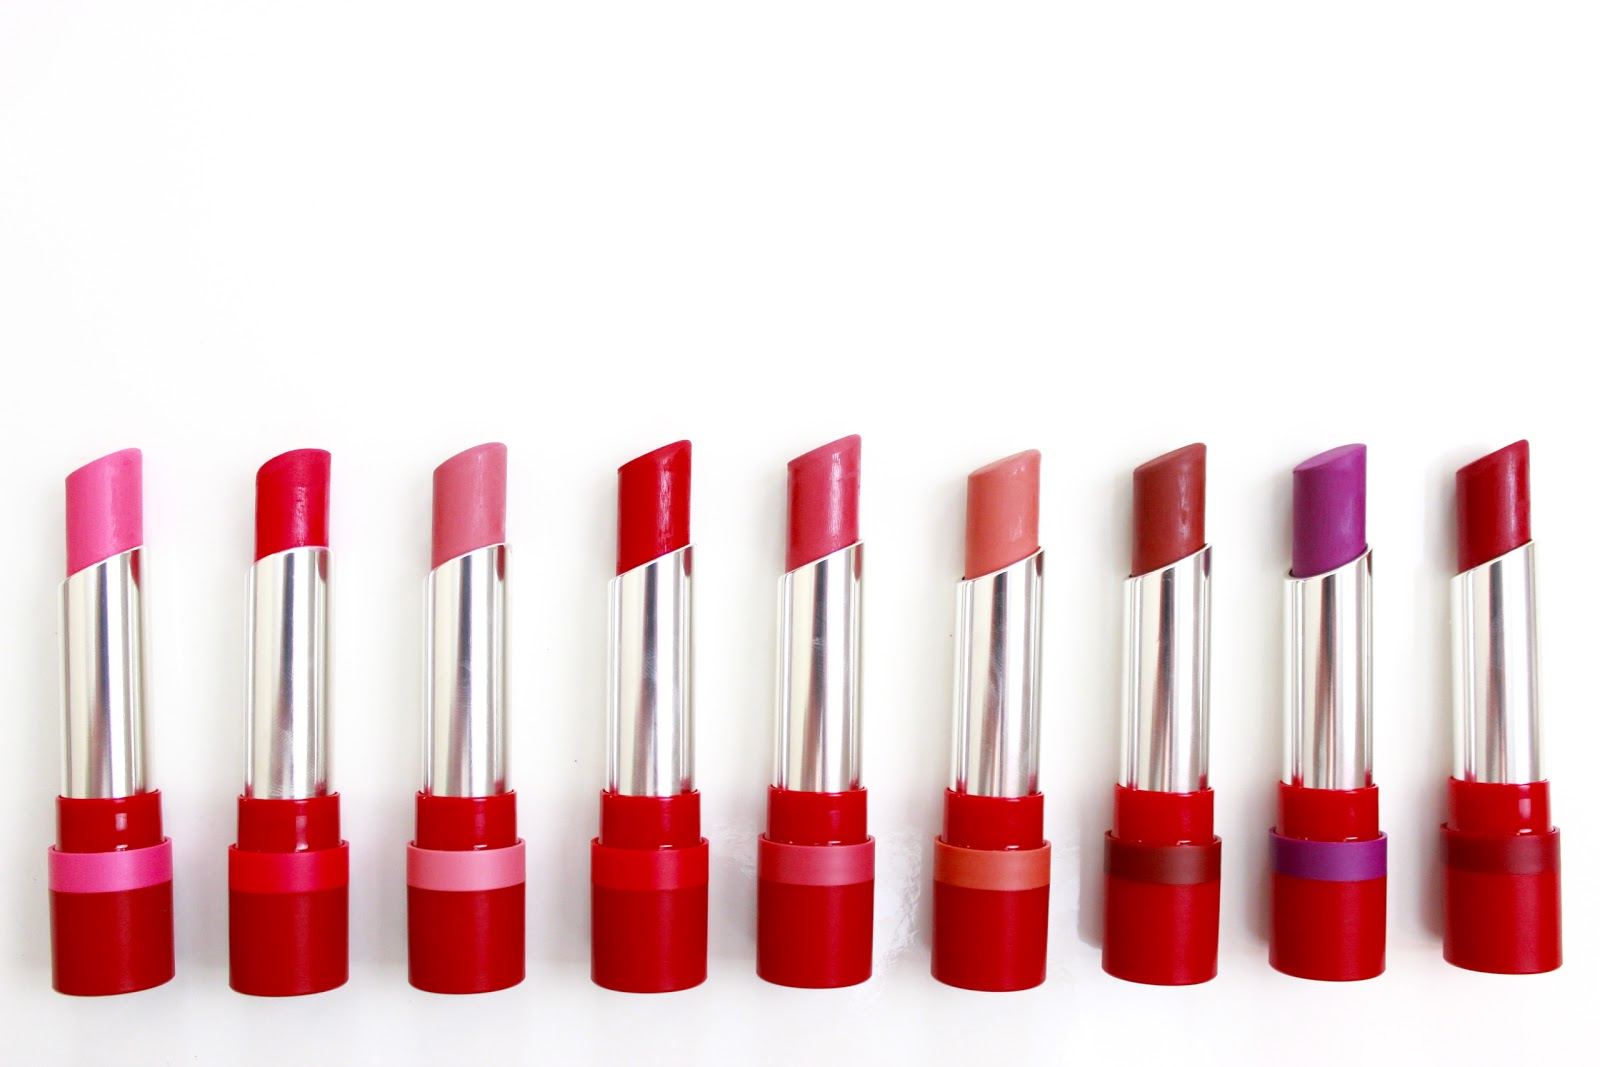 Rimmel The Only One Matte Lipstick Review and Swatches